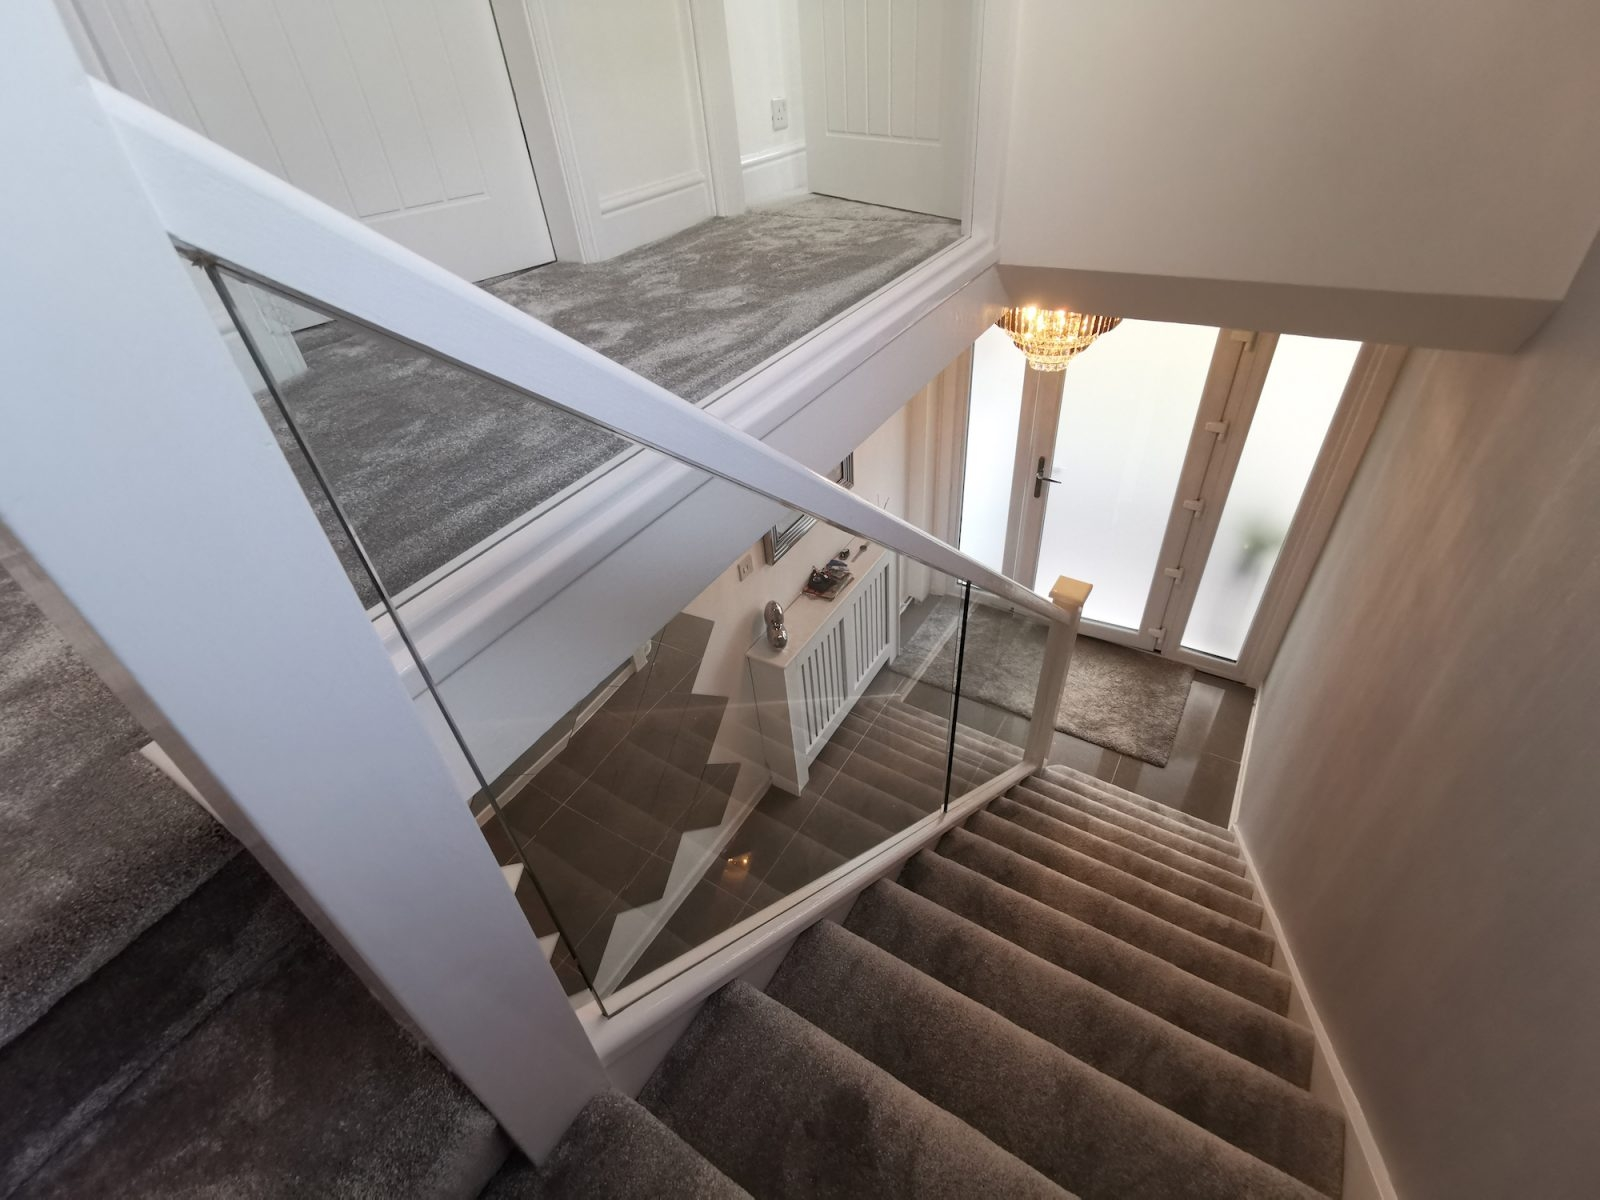 White Staircase Embedded Glass Edwards Hampson   White And Glass Staircase   Step   Before And After   Handrail   Stained   Oak